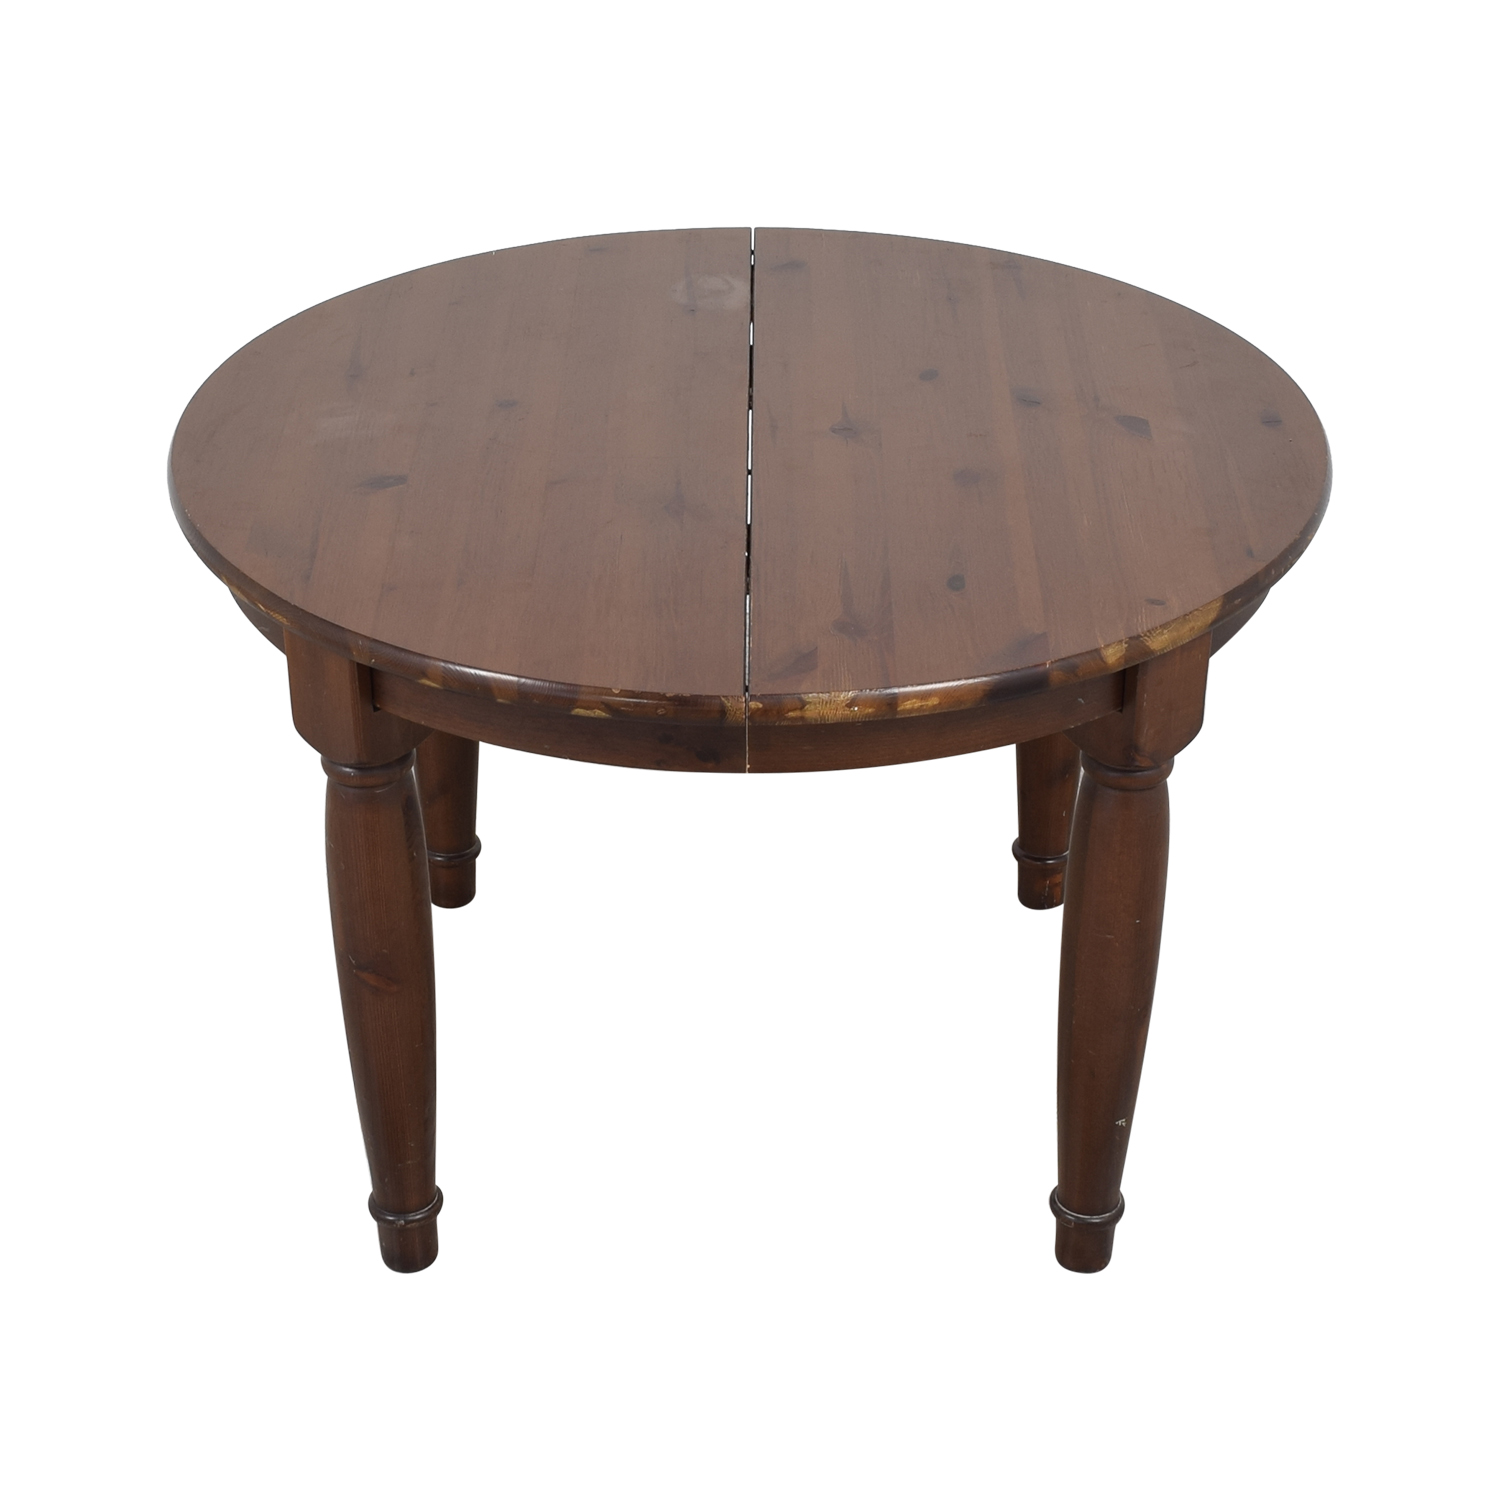 Pottery Barn Pottery Barn Round Extension Dining Table